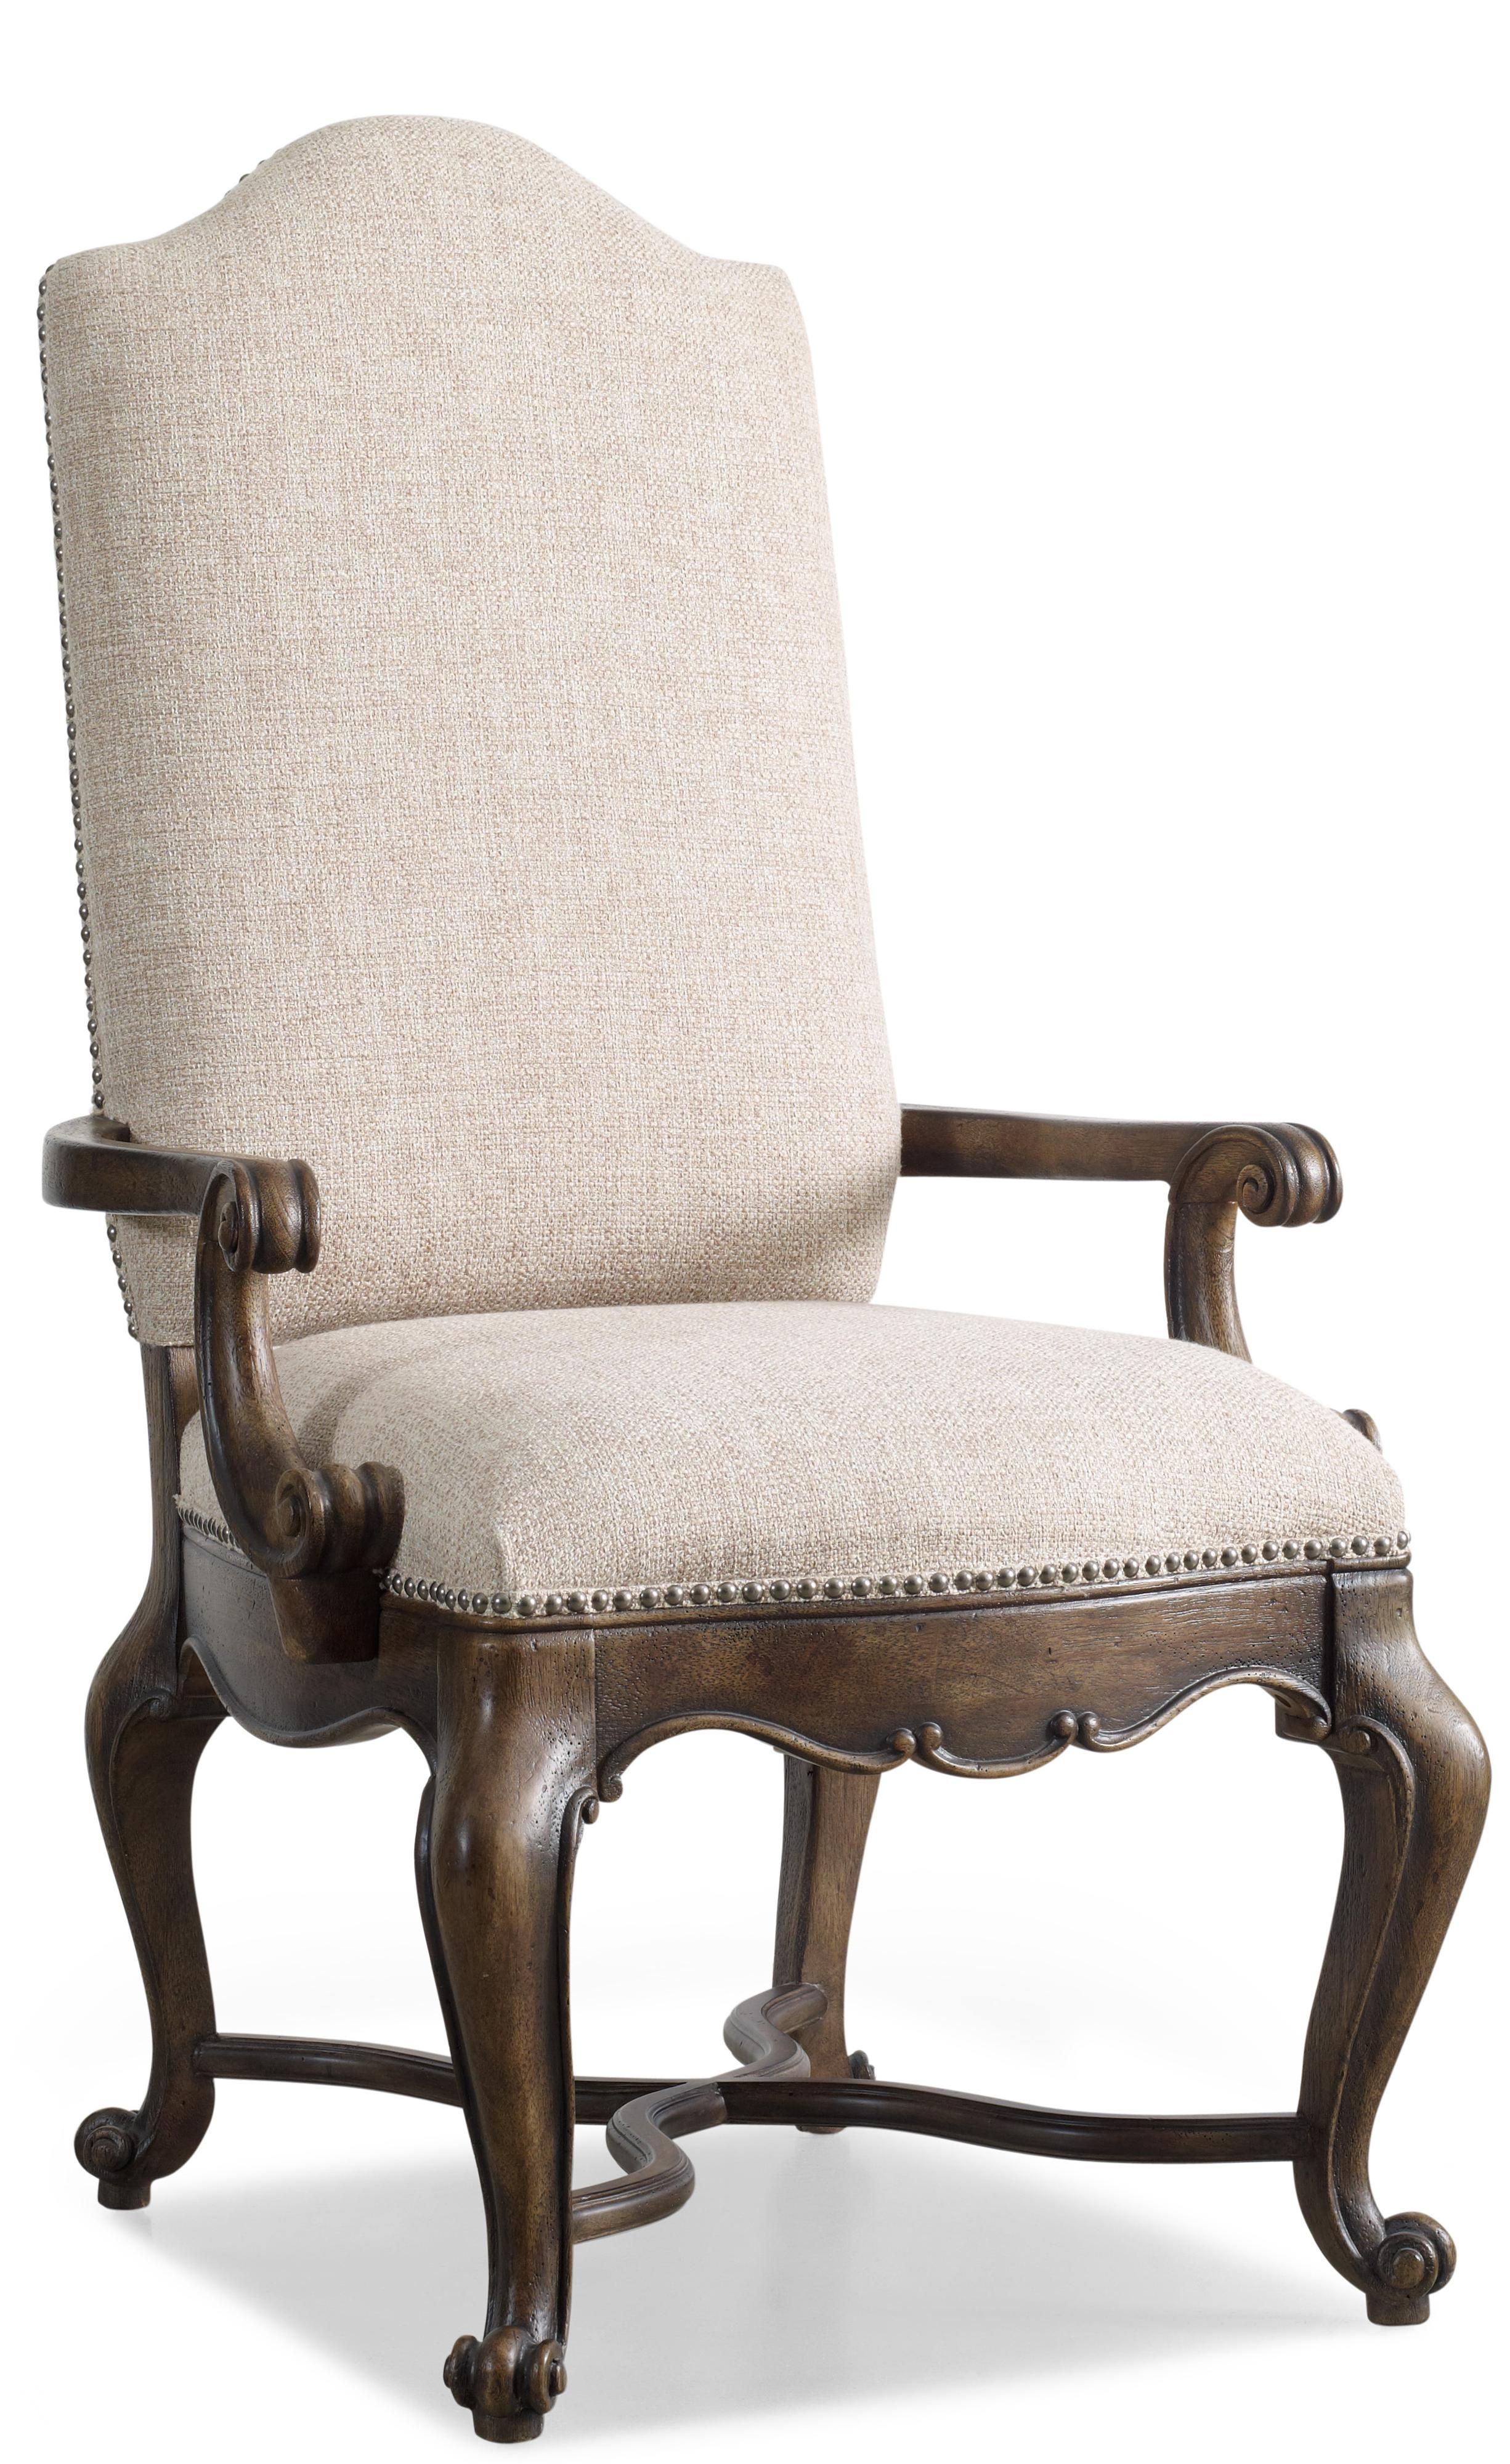 Hooker Furniture Rhapsody Upholstered Arm Chair - Item Number: 5070-75500